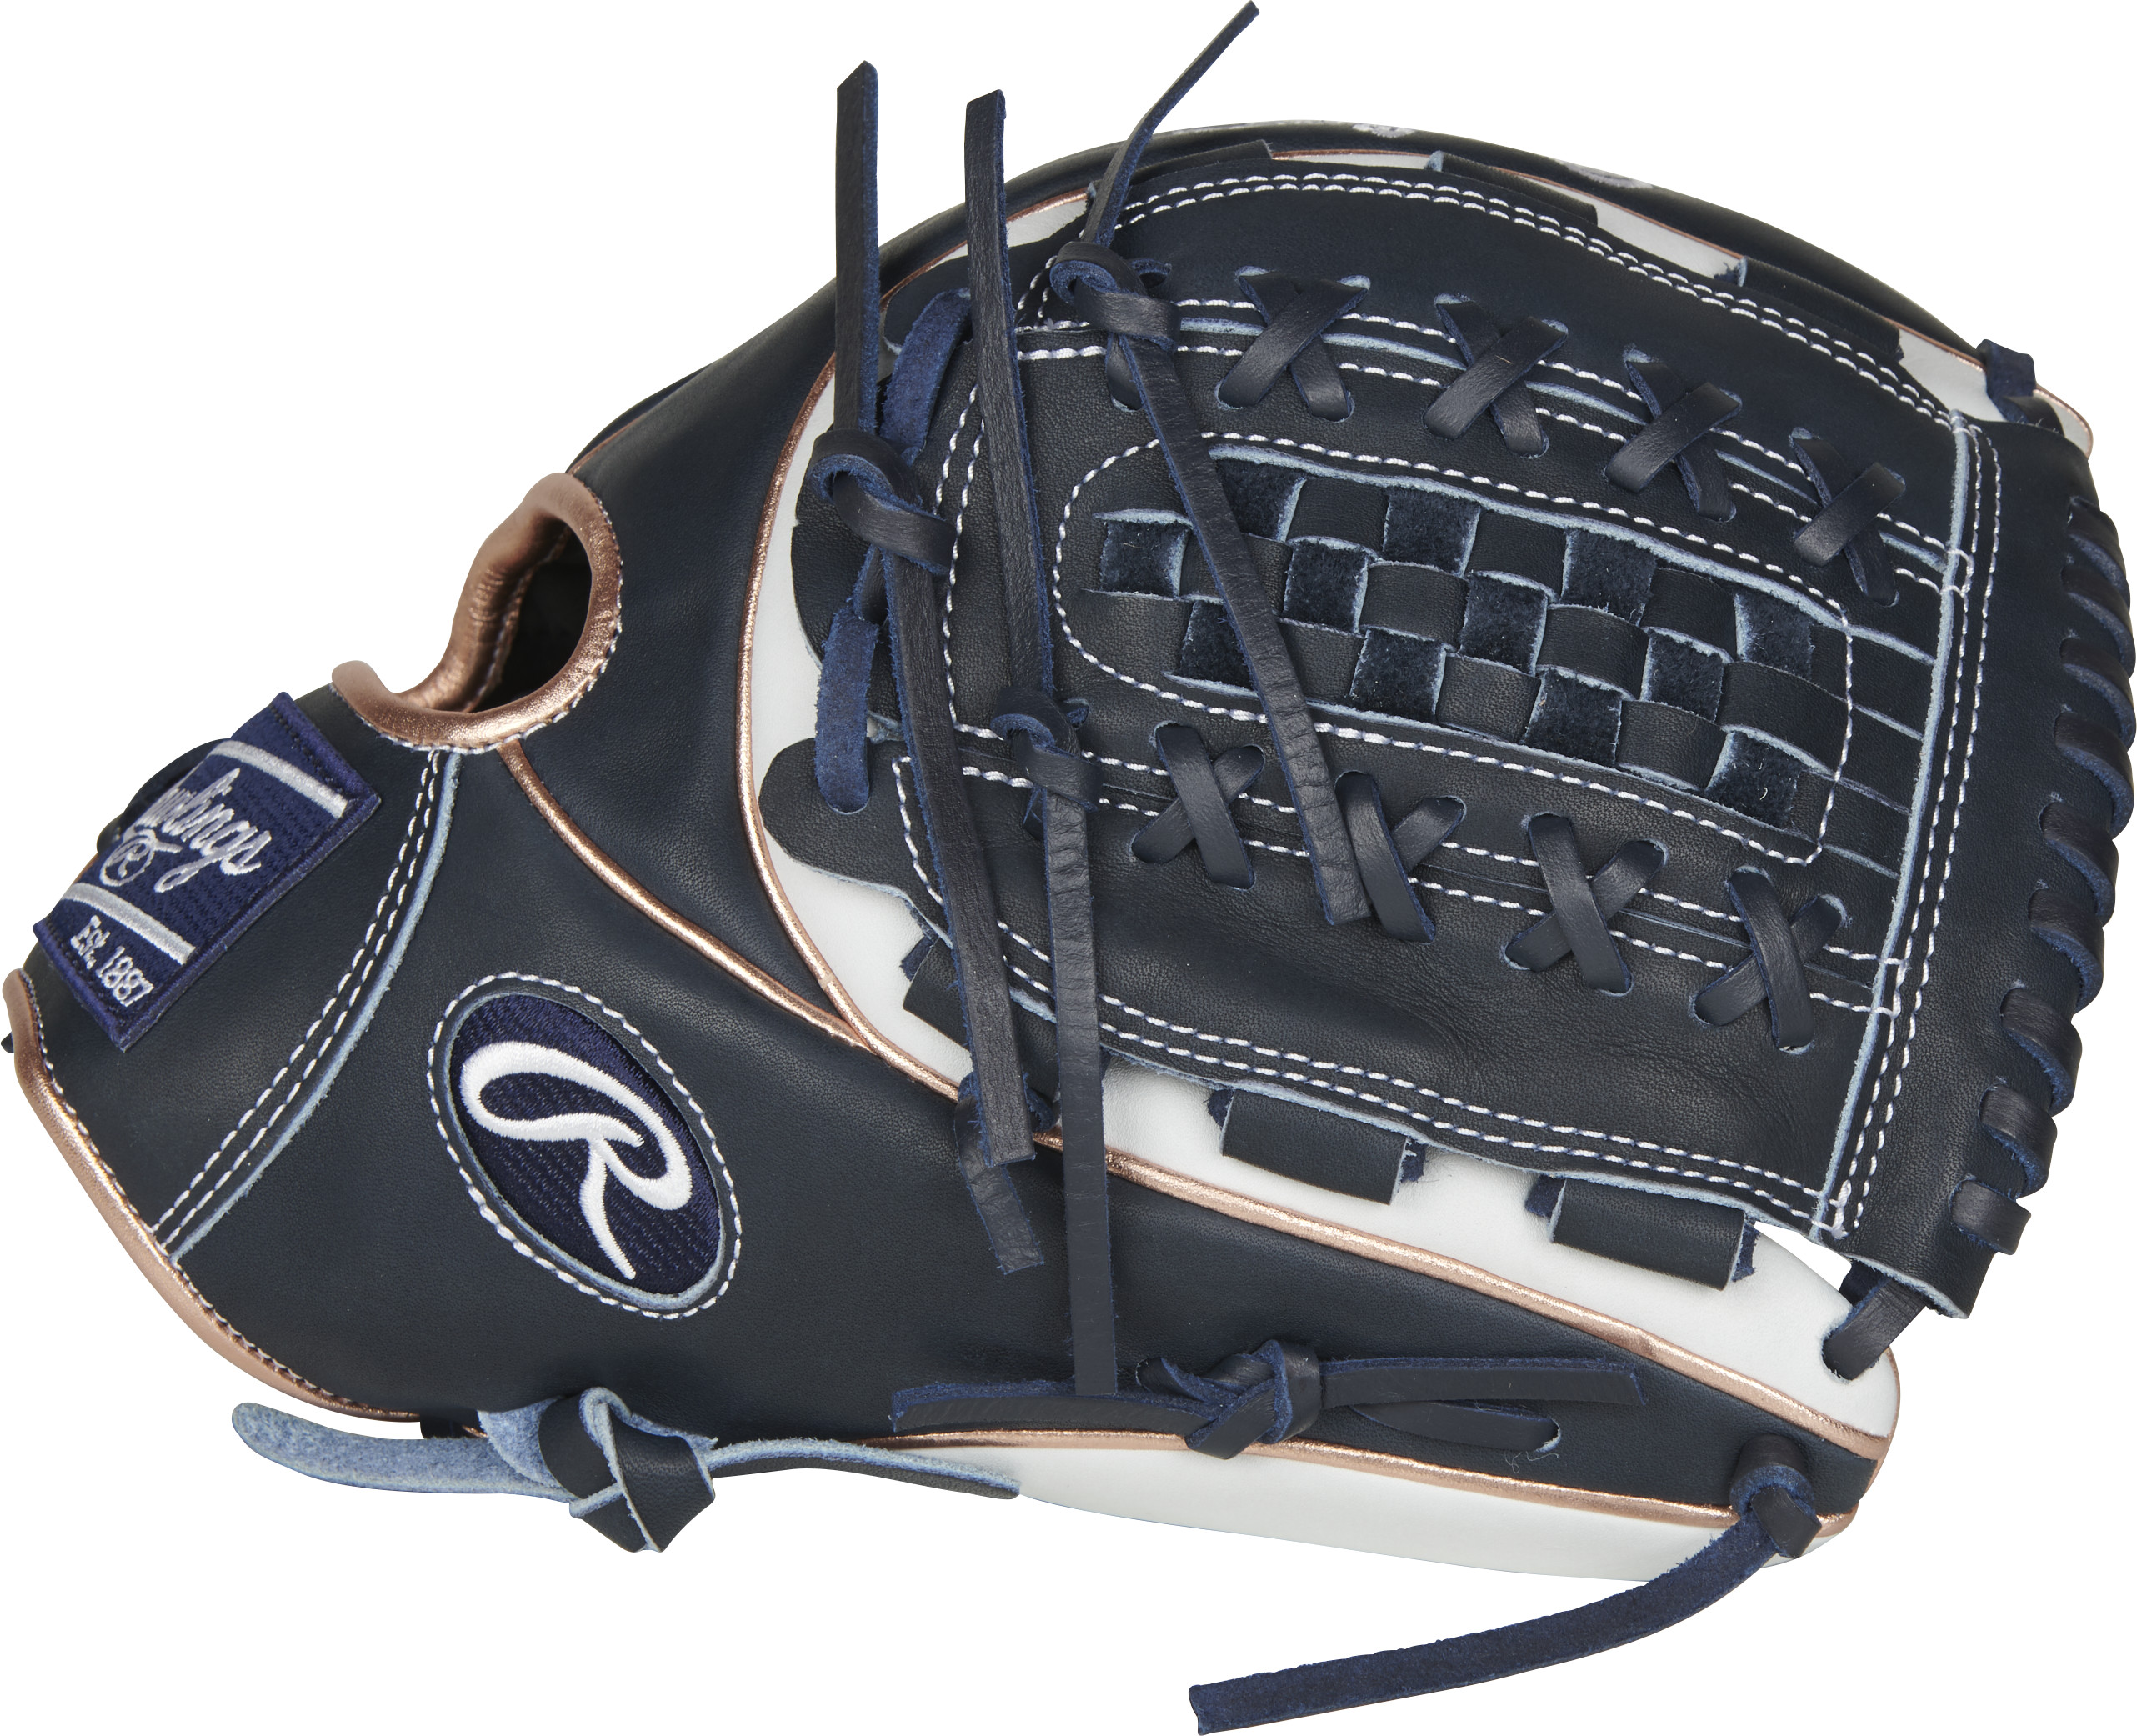 http://www.bestbatdeals.com/images/rawlingsgloves/PRO716SB-18NW-3.jpg